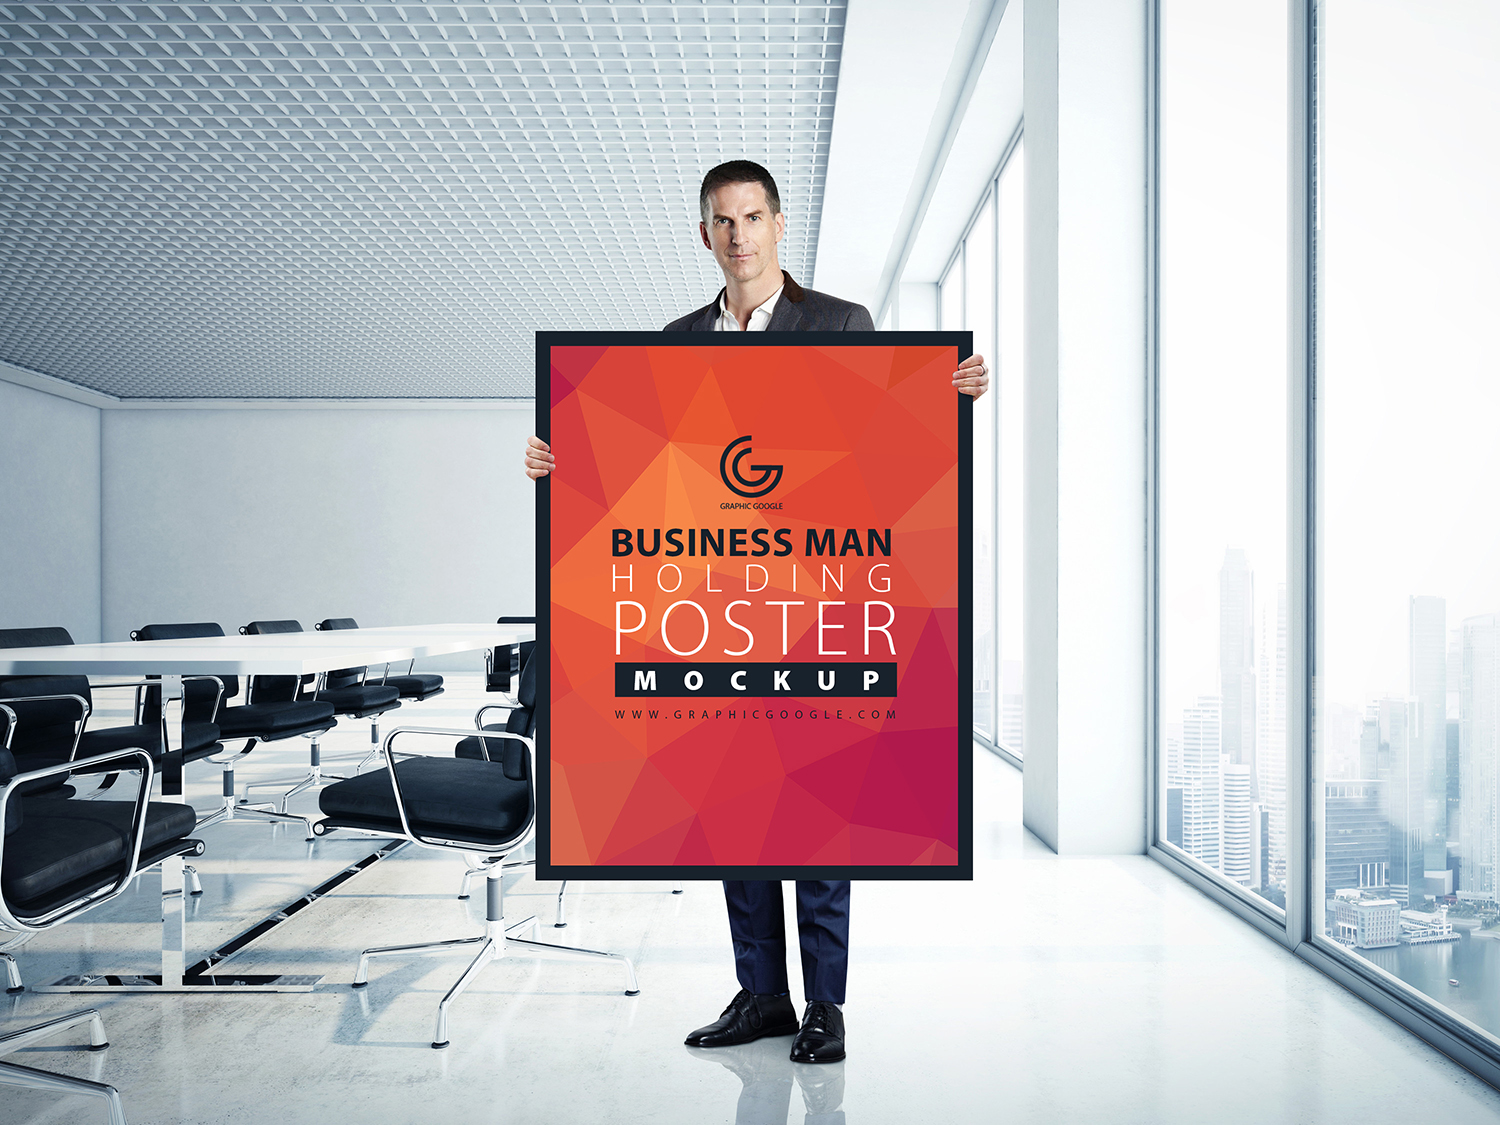 Business Man Holding Poster Mockup-Preview Image